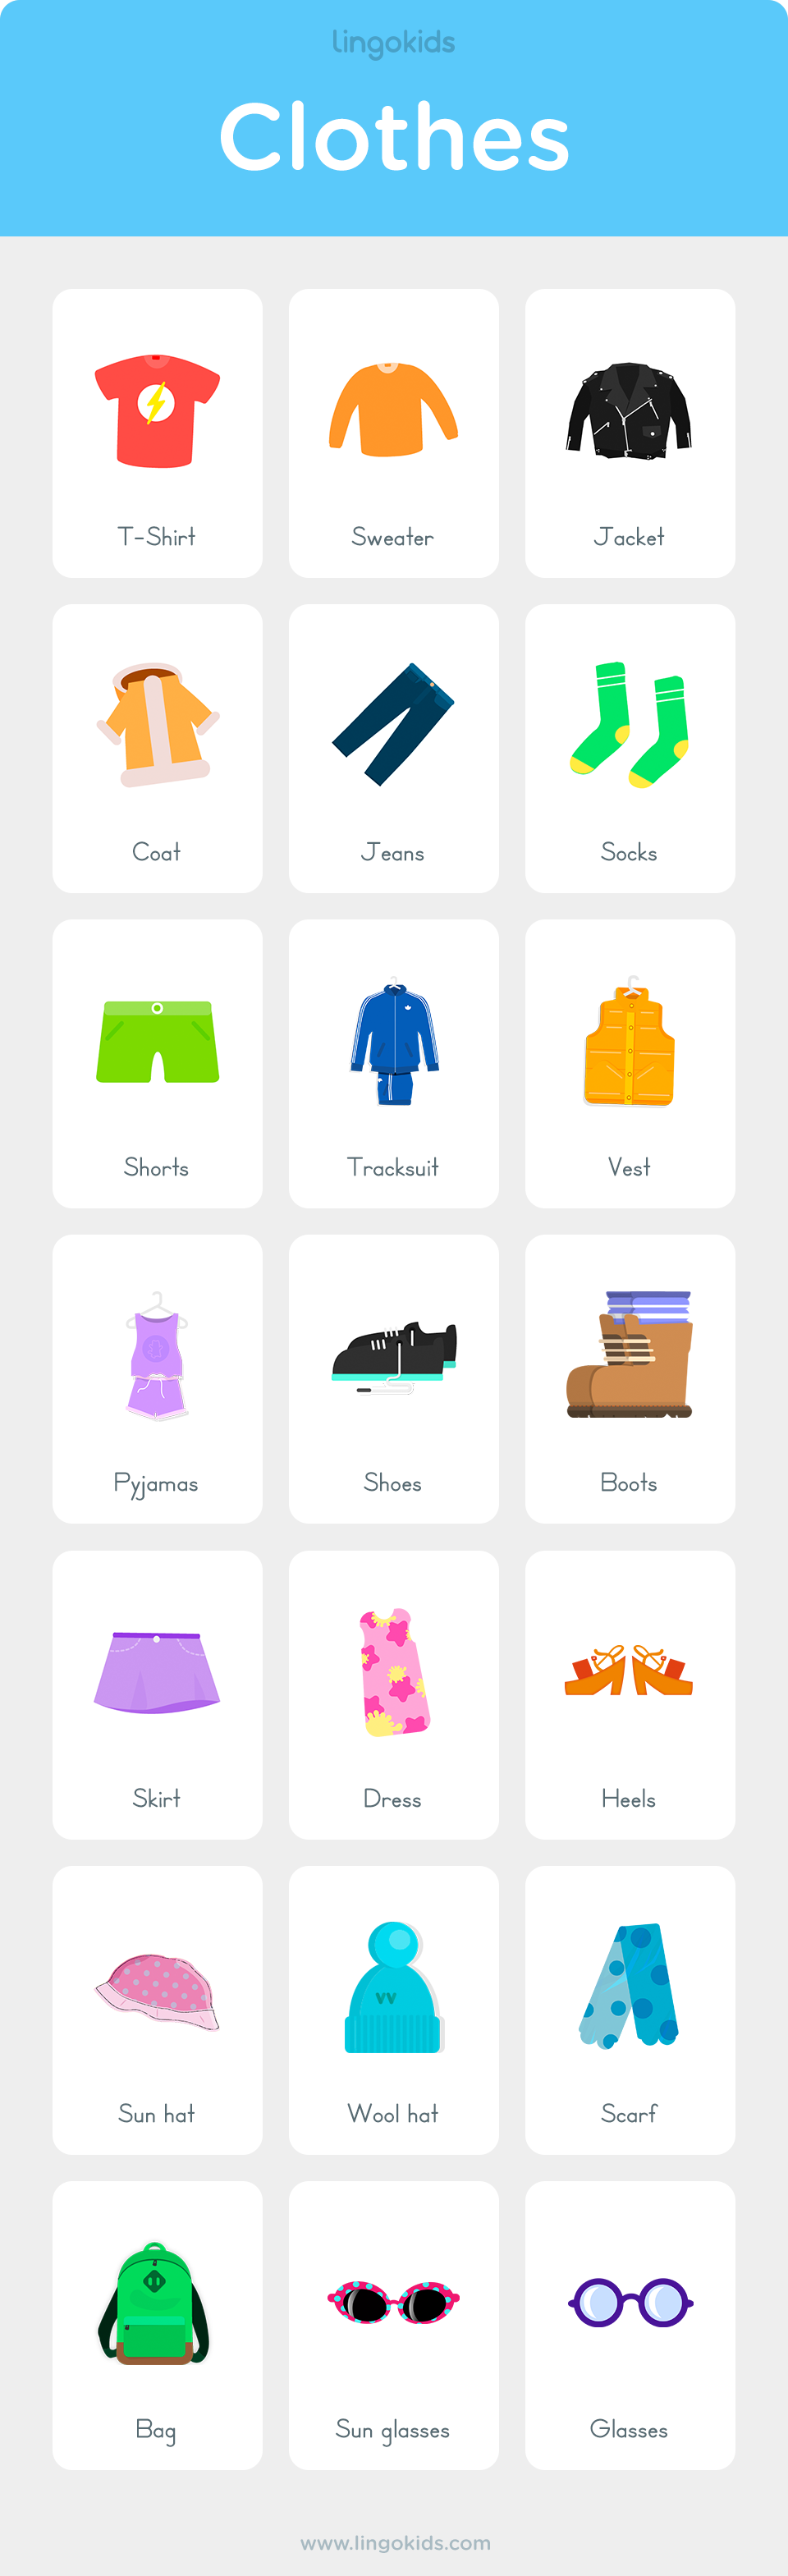 Clothes Vocabulary In English English Lessons For Kids Learning English For Kids Teach English To Kids [ 3138 x 960 Pixel ]